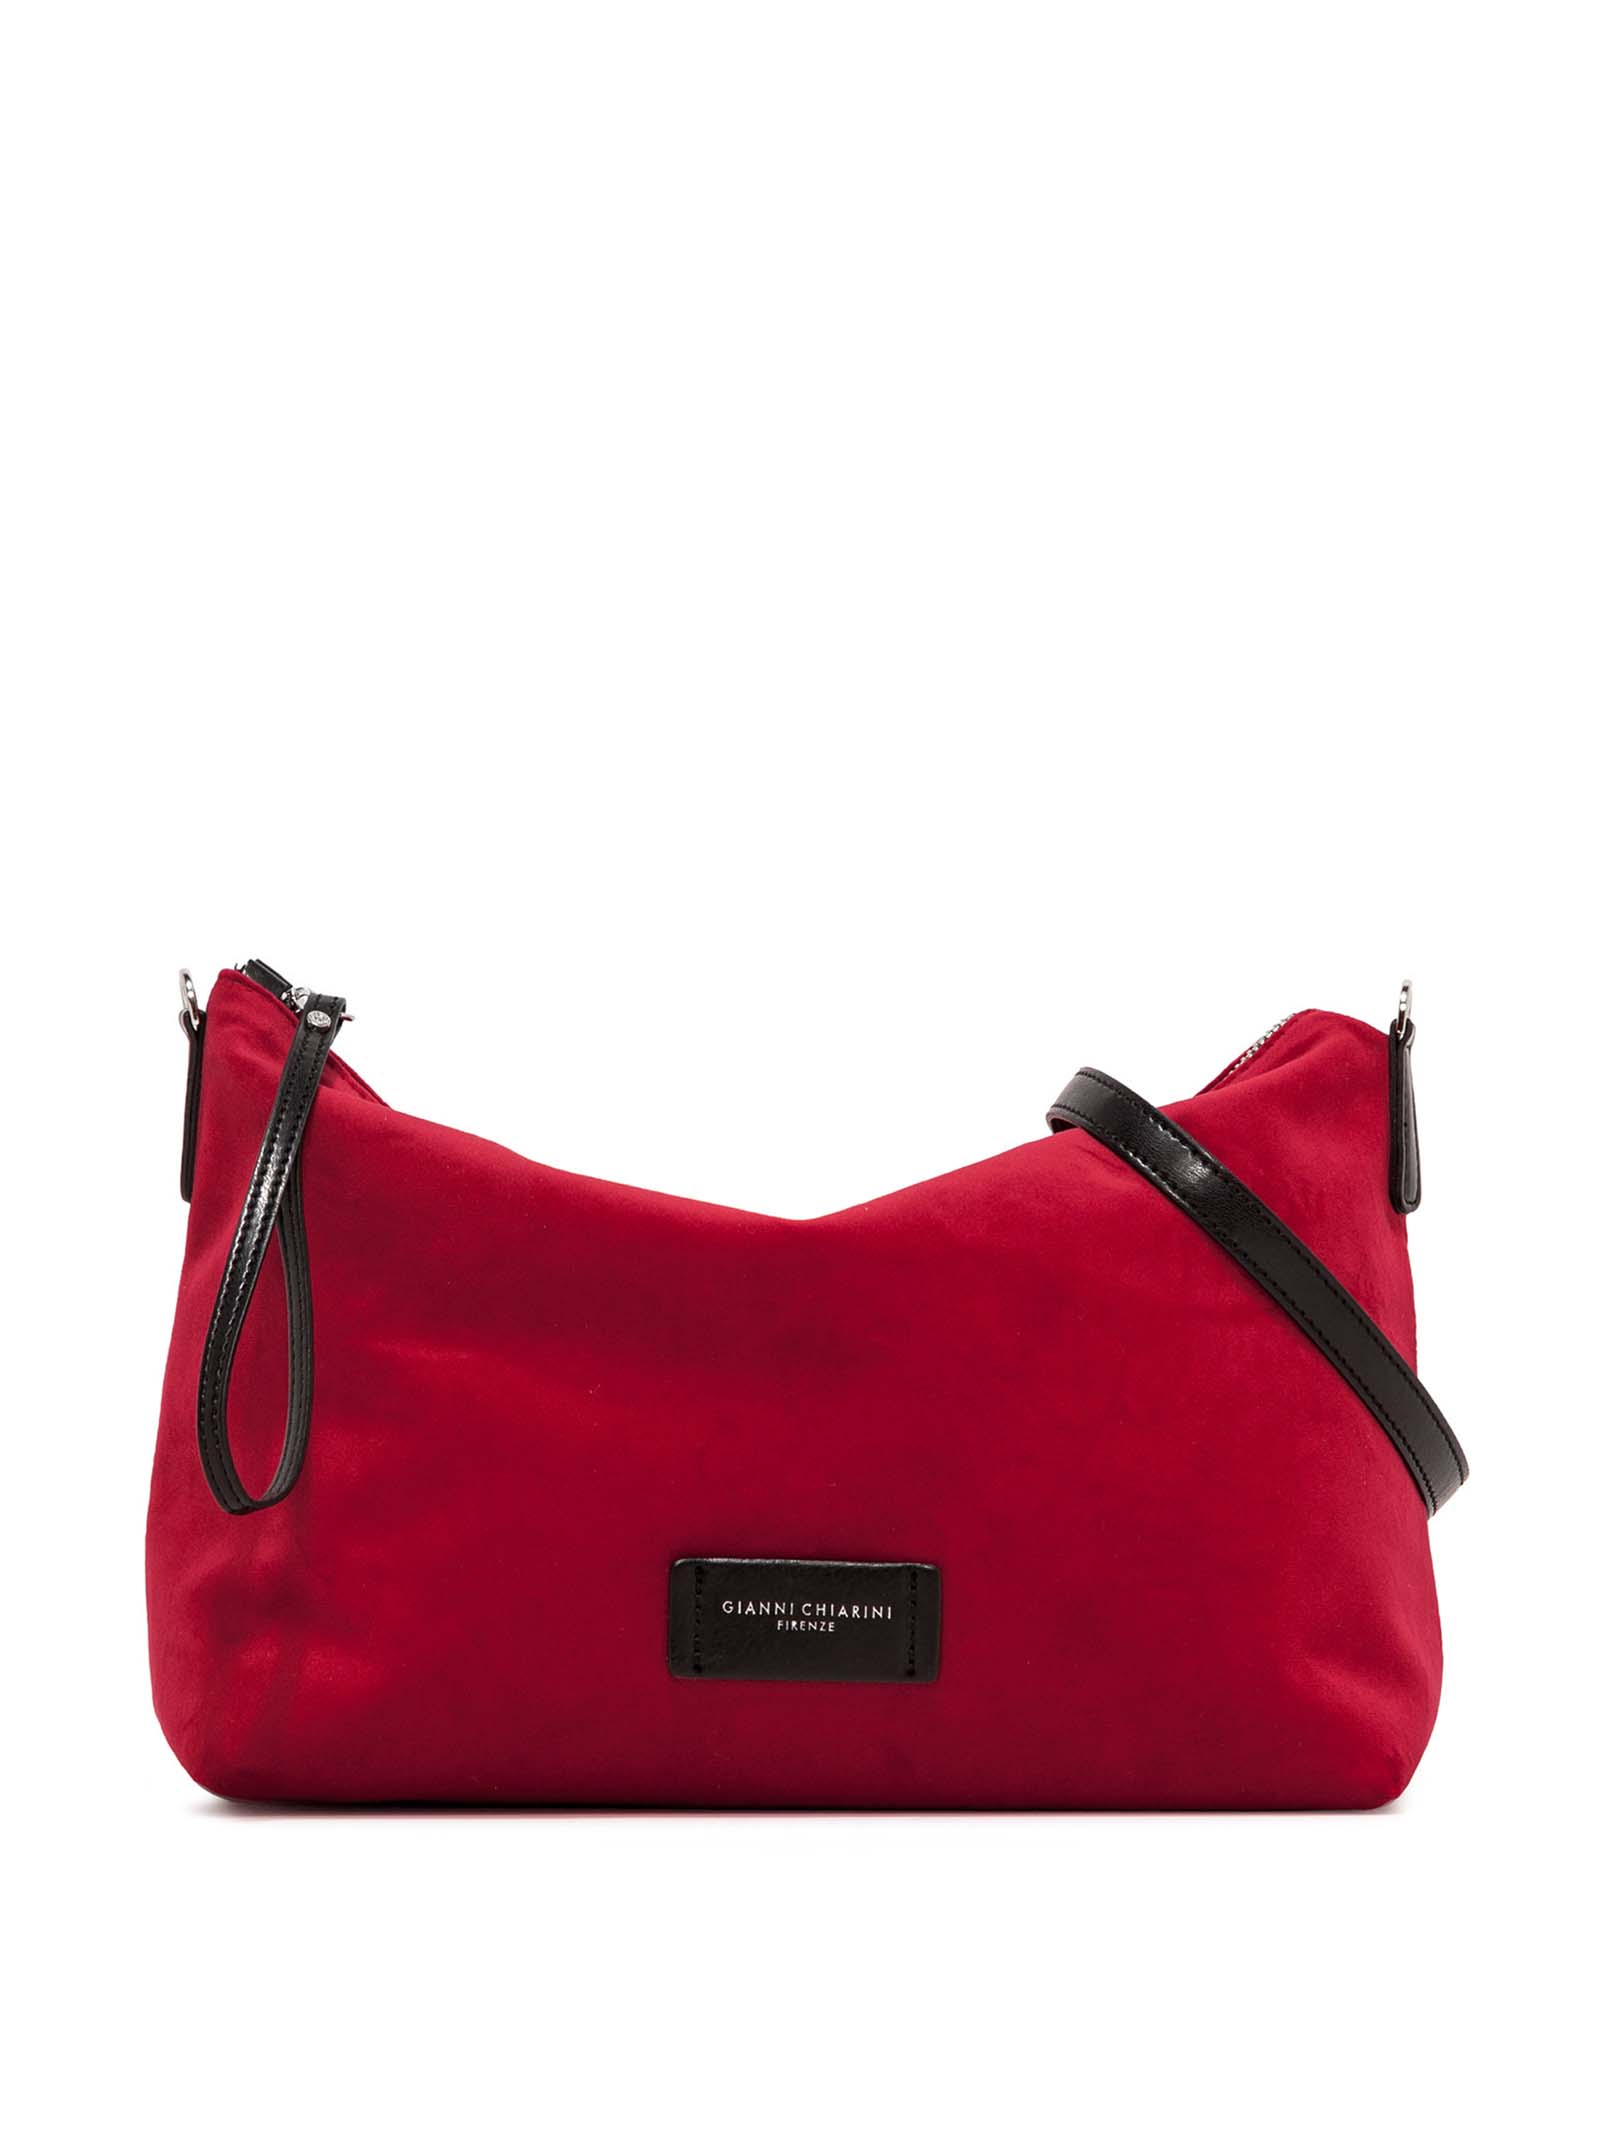 Women's Accessories Empty Bag in Red Fabric with Leather Shoulder Strap and Bracelet Gianni Chiarini   Bags and backpacks   SB9391447